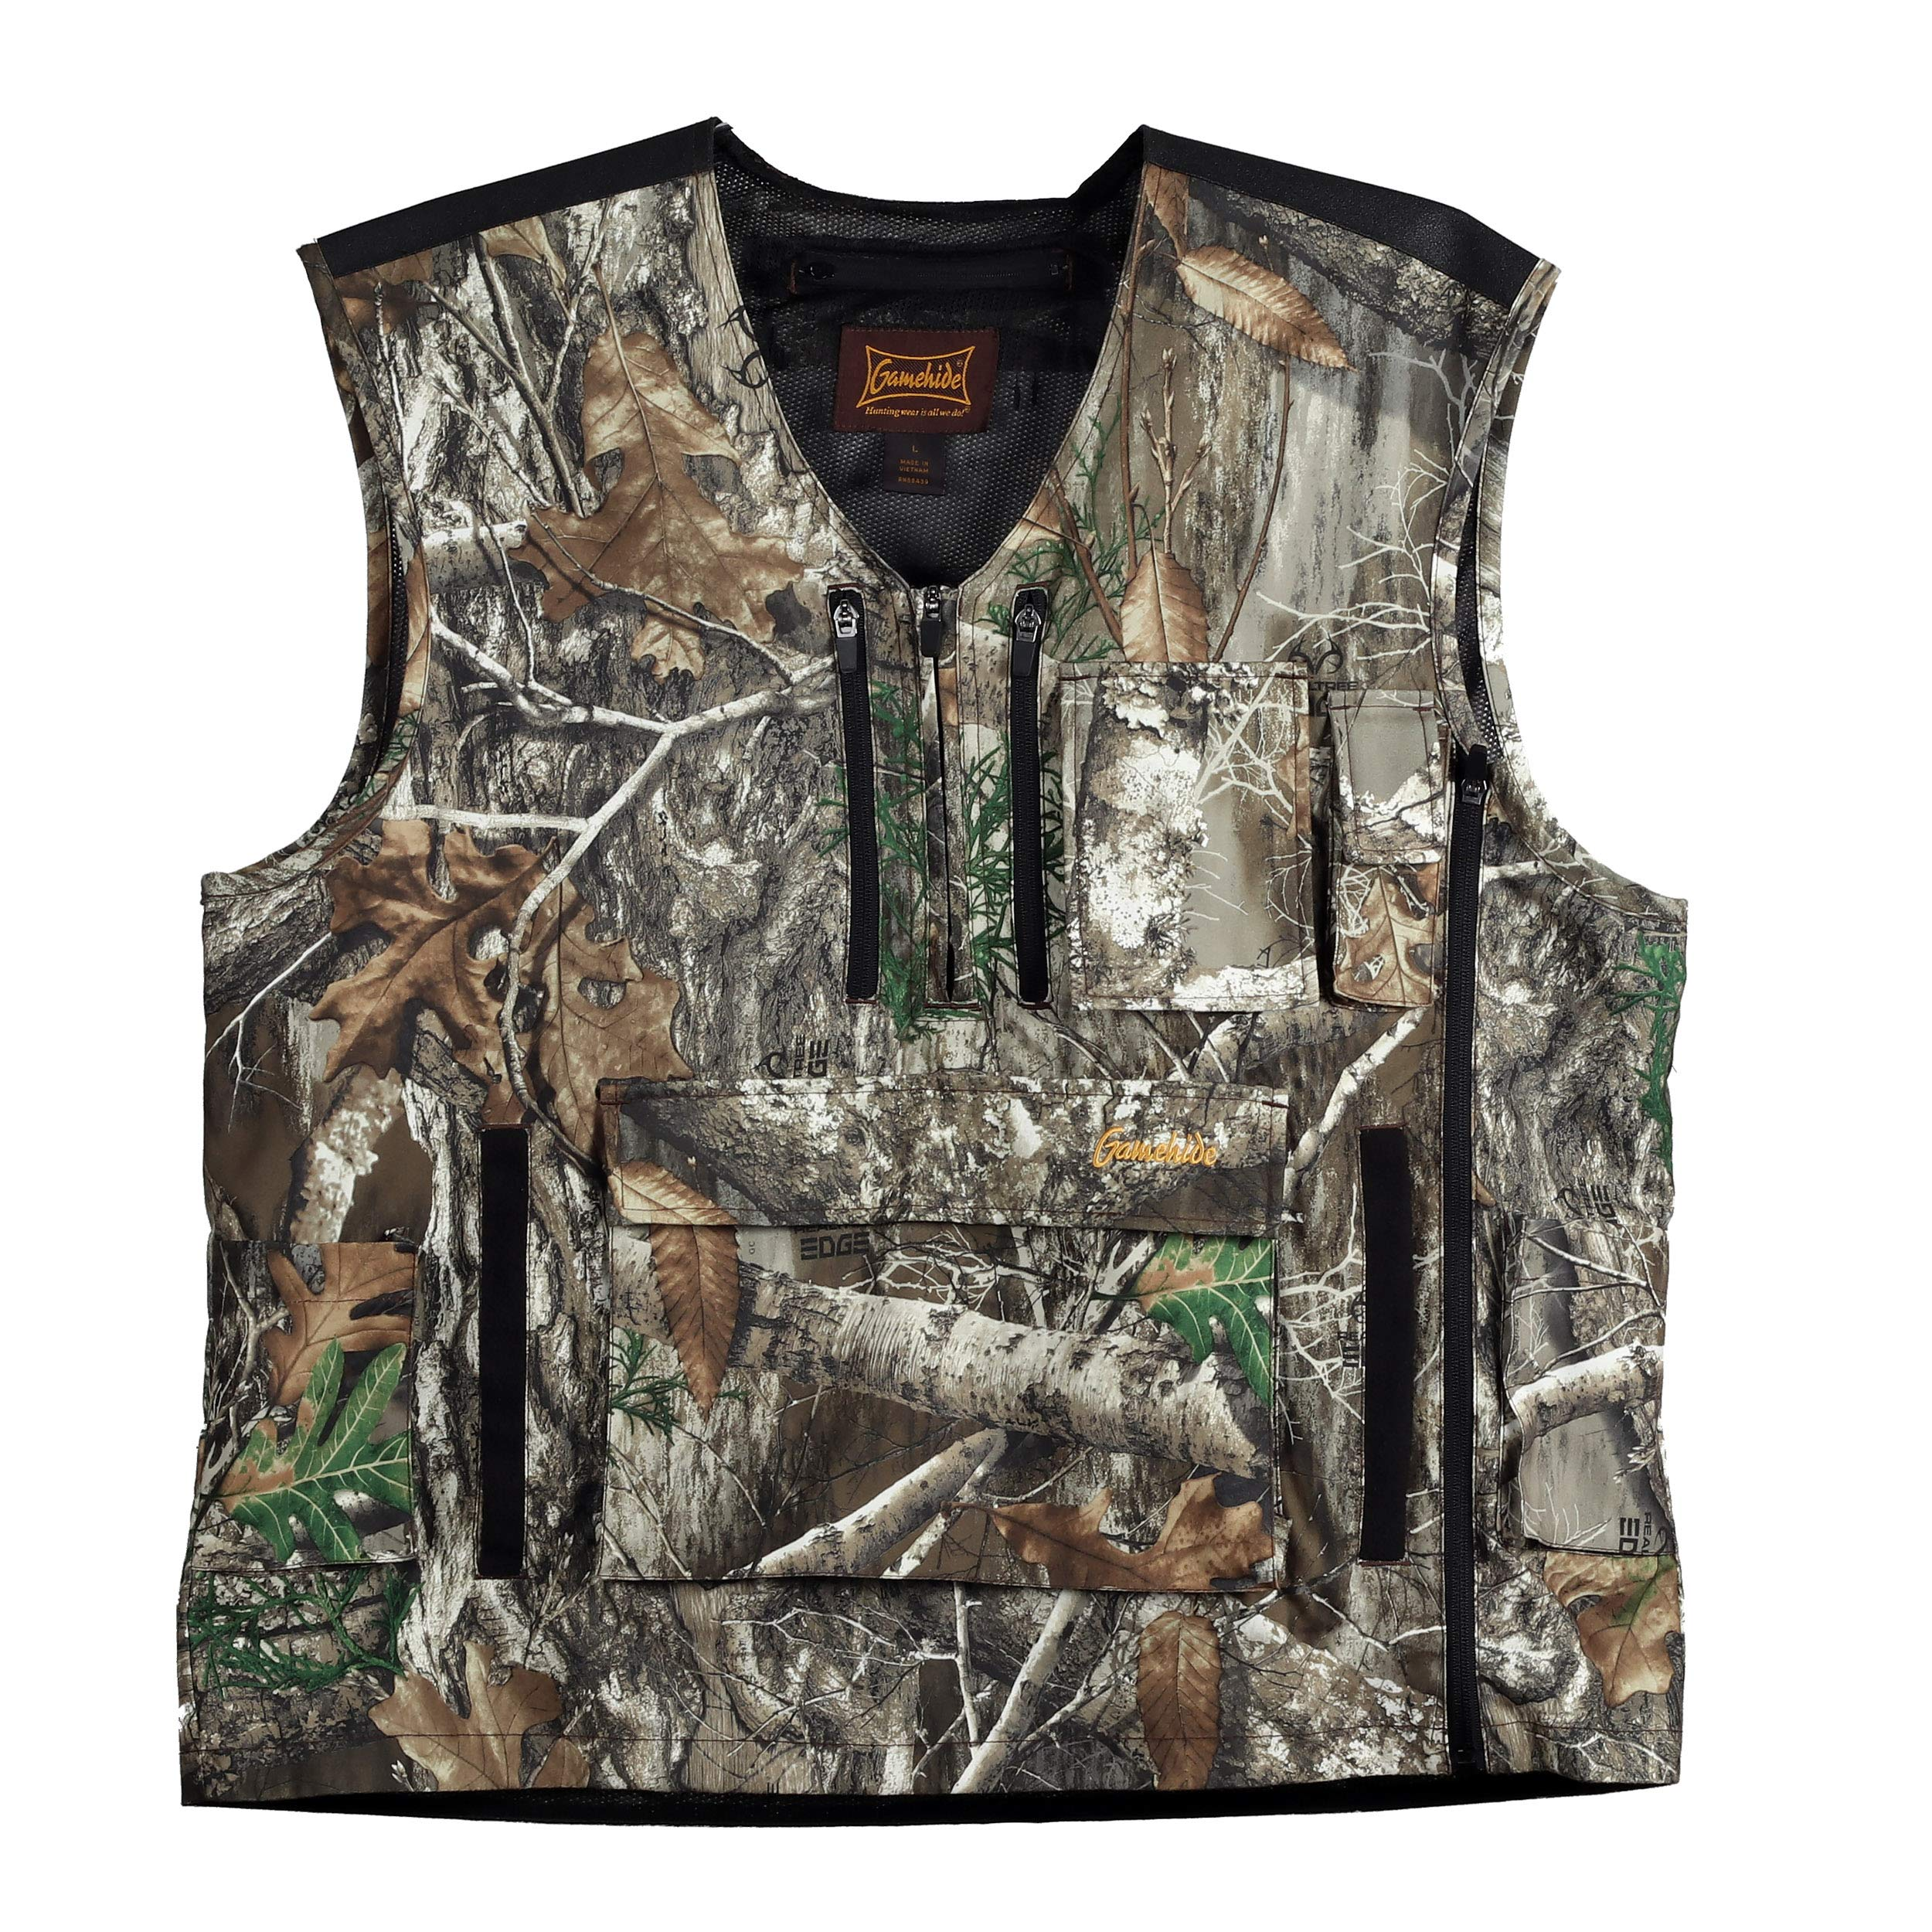 Mountain Pass Extreme Big Game Blaze Orange Camo Hunting Vest (Realtree Edge, 4X-Large) by Gamehide